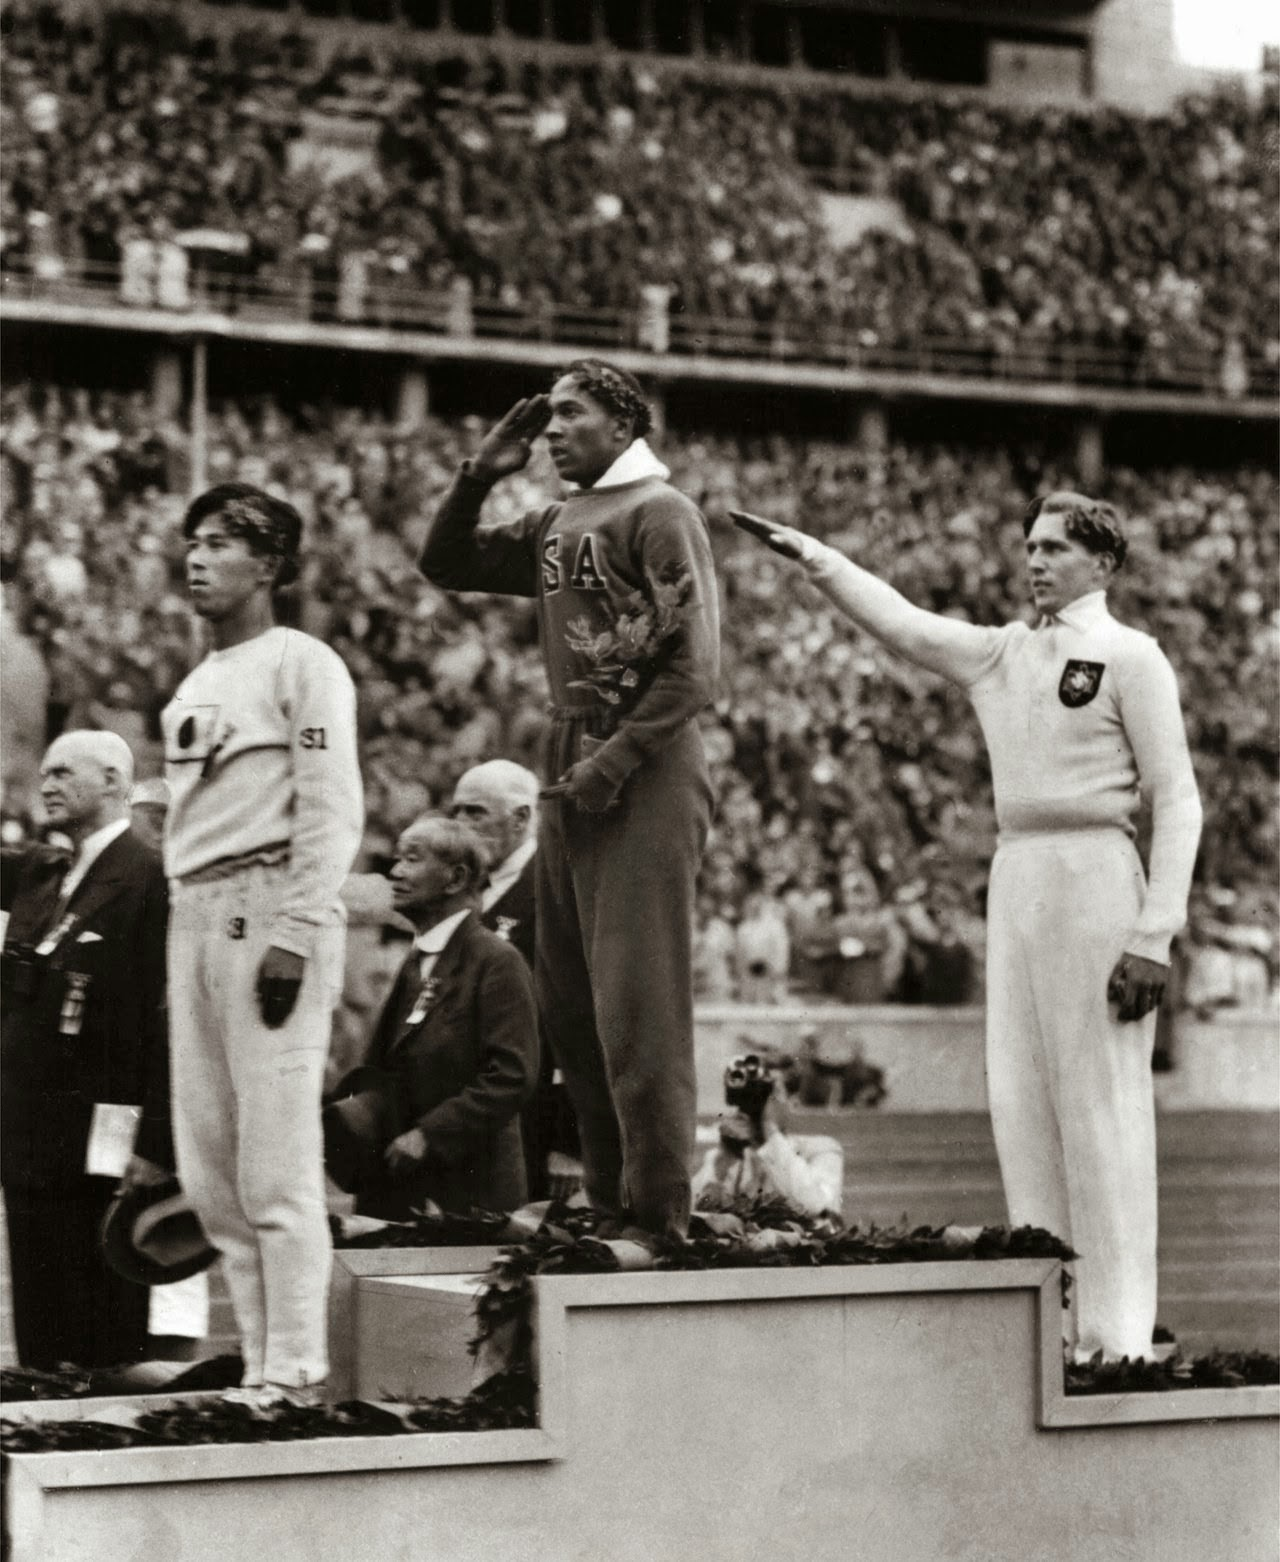 Jesse Owens salutes during the presentation of his gold medal for the long jump, after defeating Germany's Lutz Long during the 1936 Summer Olympics in Berlin.